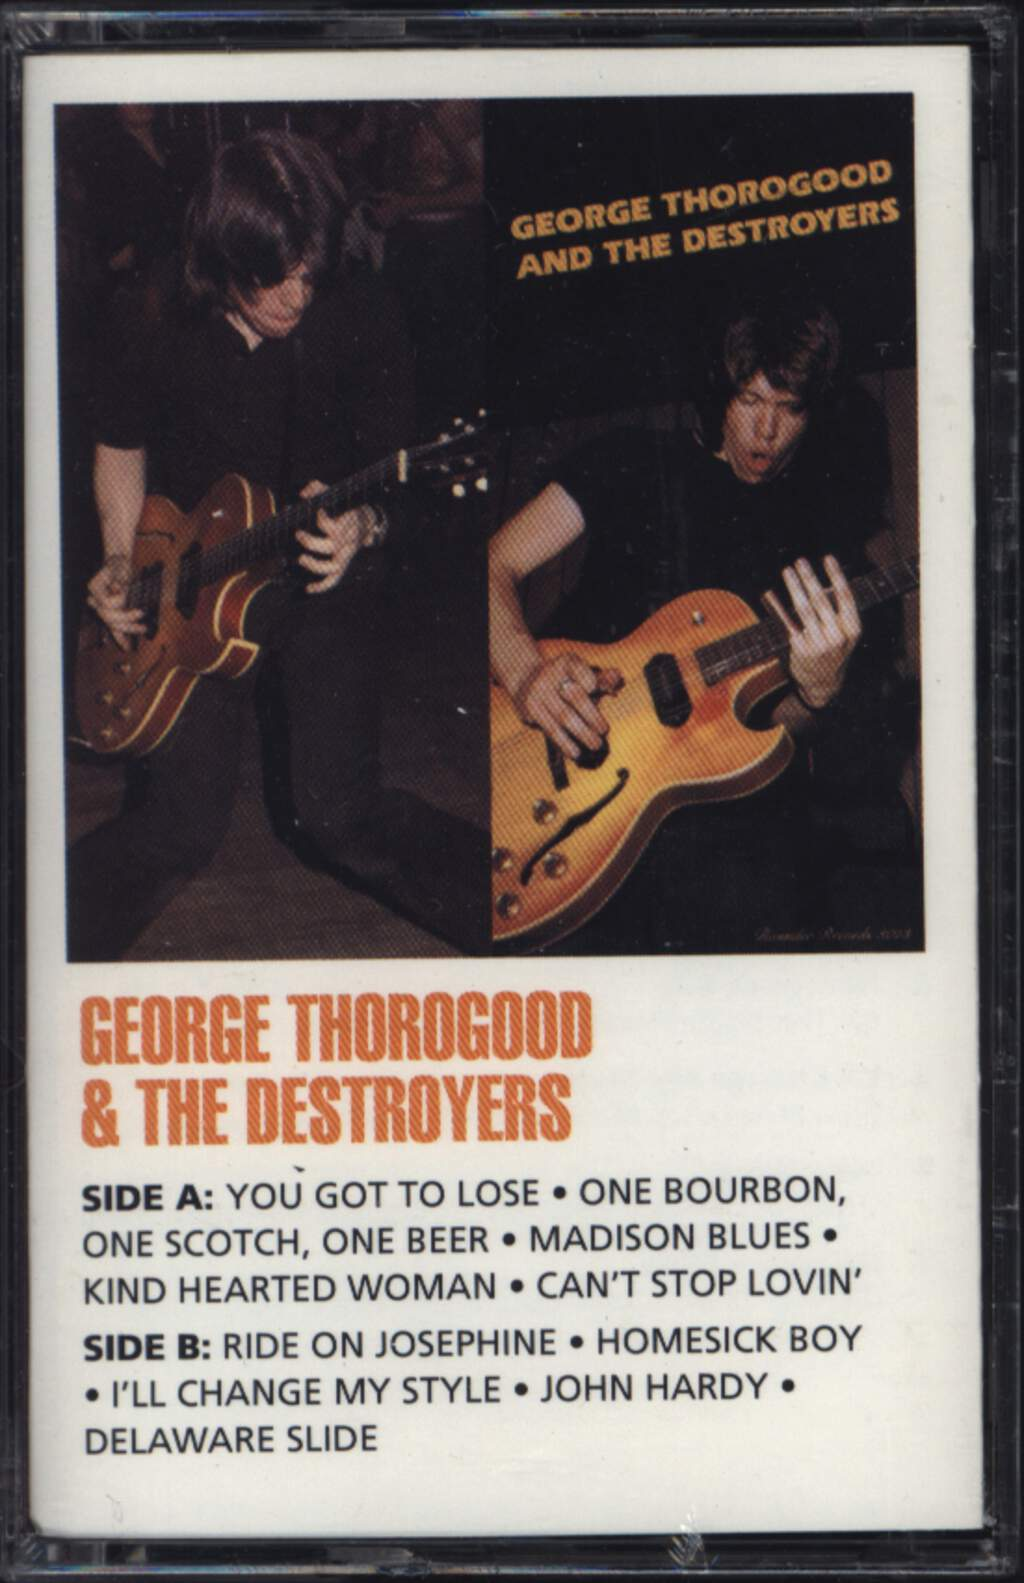 George Thorogood & The Destroyers: George Thorogood And The Destroyers, Compact Cassette